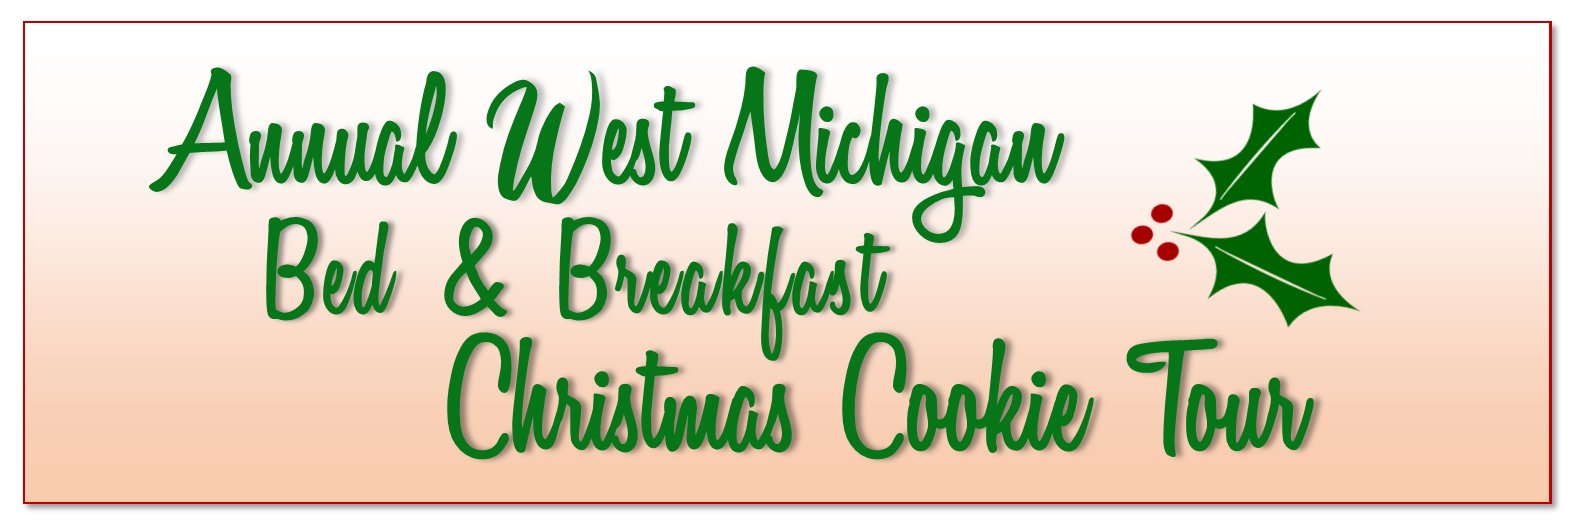 2019 West Michigan B&B Christmas Cookie Tour… - Join us December 6 & 7, 2019 or December 13 & 14, 2019 for a festive-filled weekend at Shining Light Inn B&B… we guarantee you will have sweet dreams!The 2019 West Michigan B&B Christmas Cookie Tour will be held the first two weekends in December. Friday tour hours are 6-9 p.m. & Saturday tour hours are 1-6 p.m.